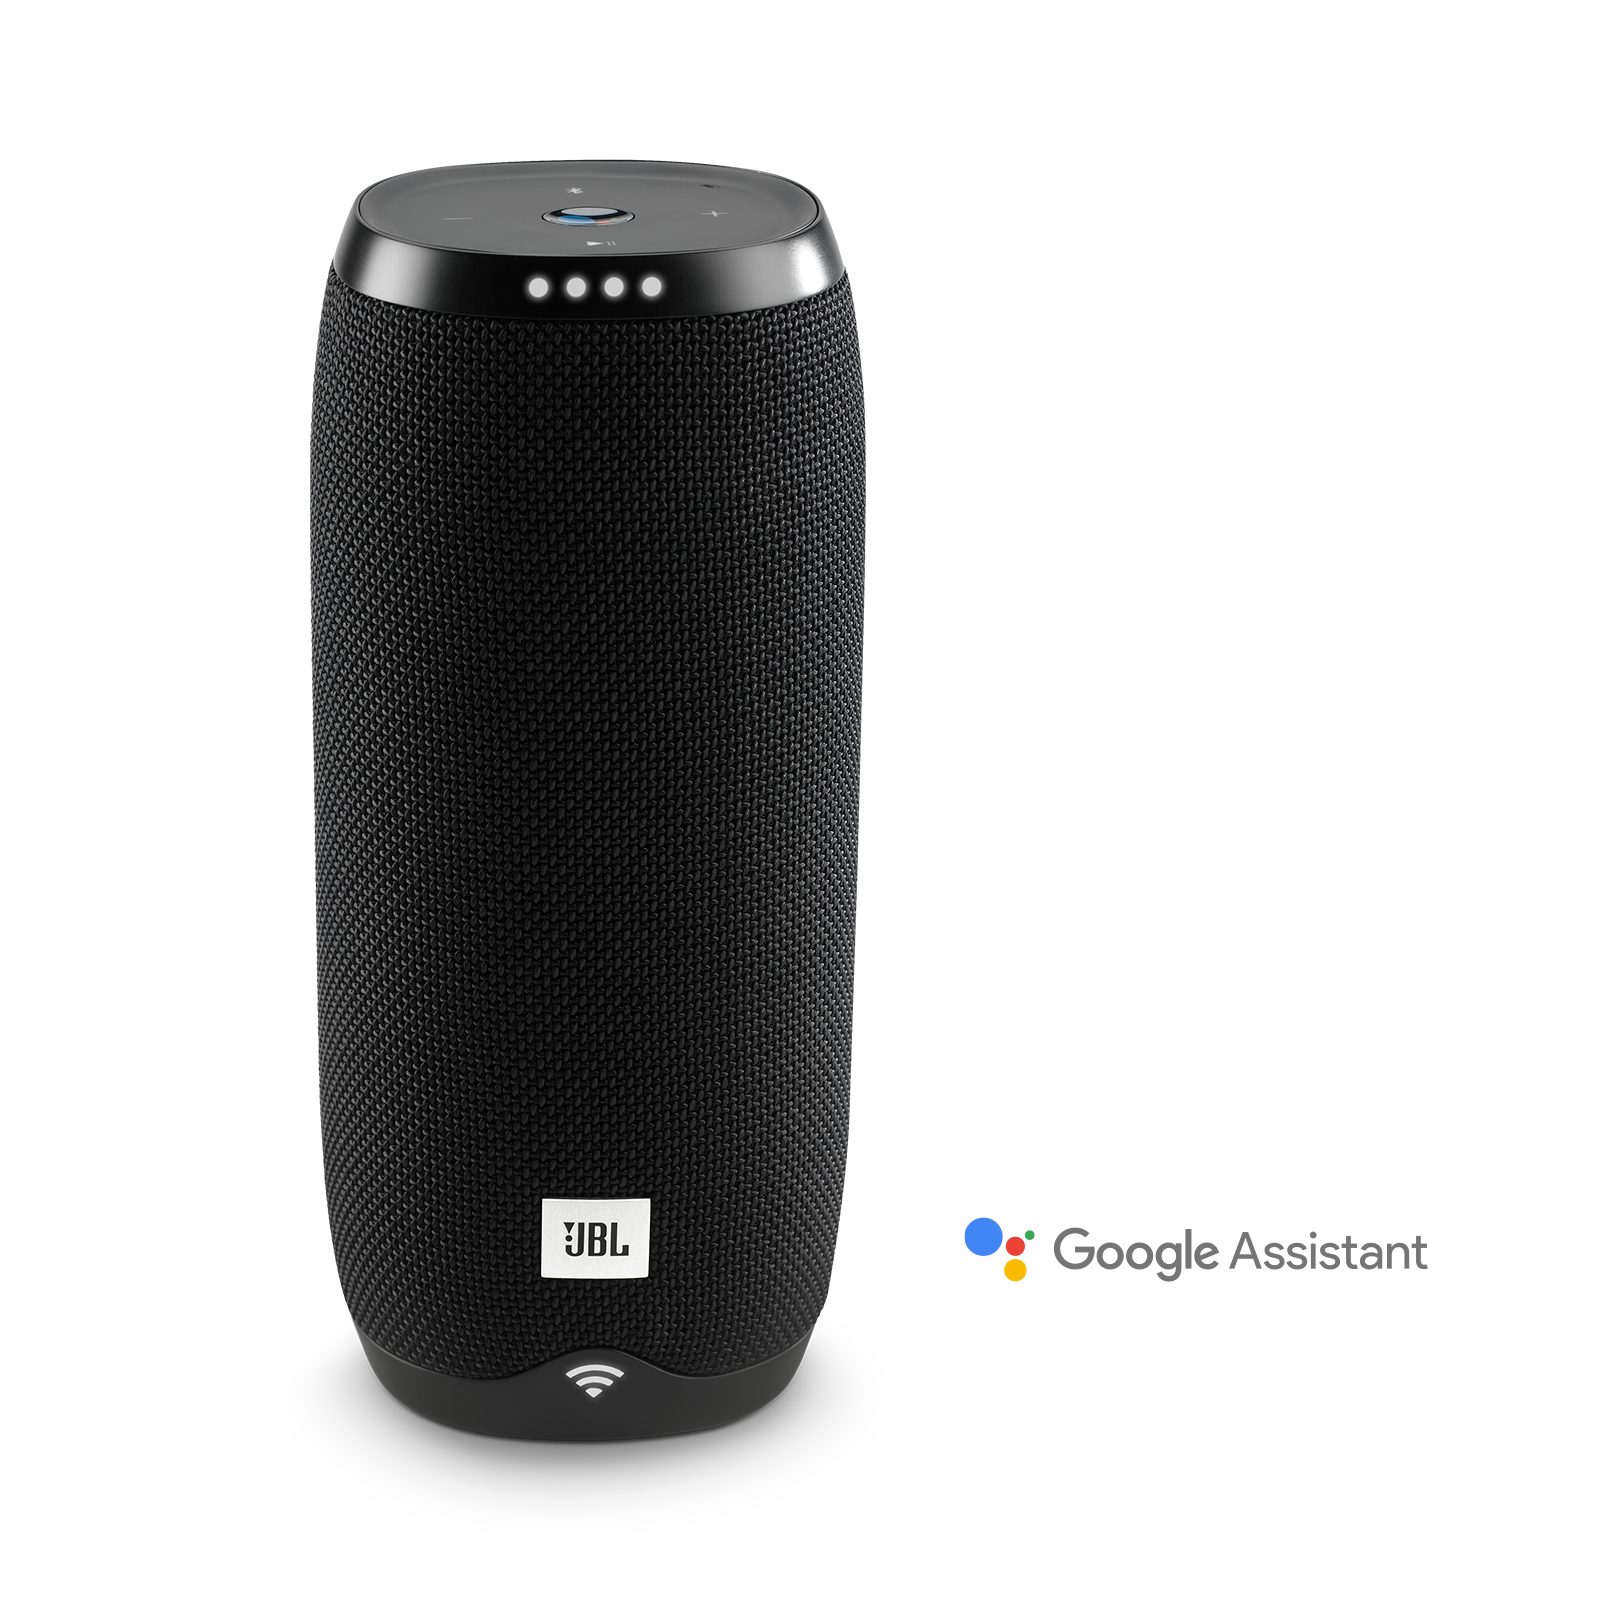 Jbl Link 20 Voice Activated Portable Speaker Phone Lines Used For Setting Up Whole House System